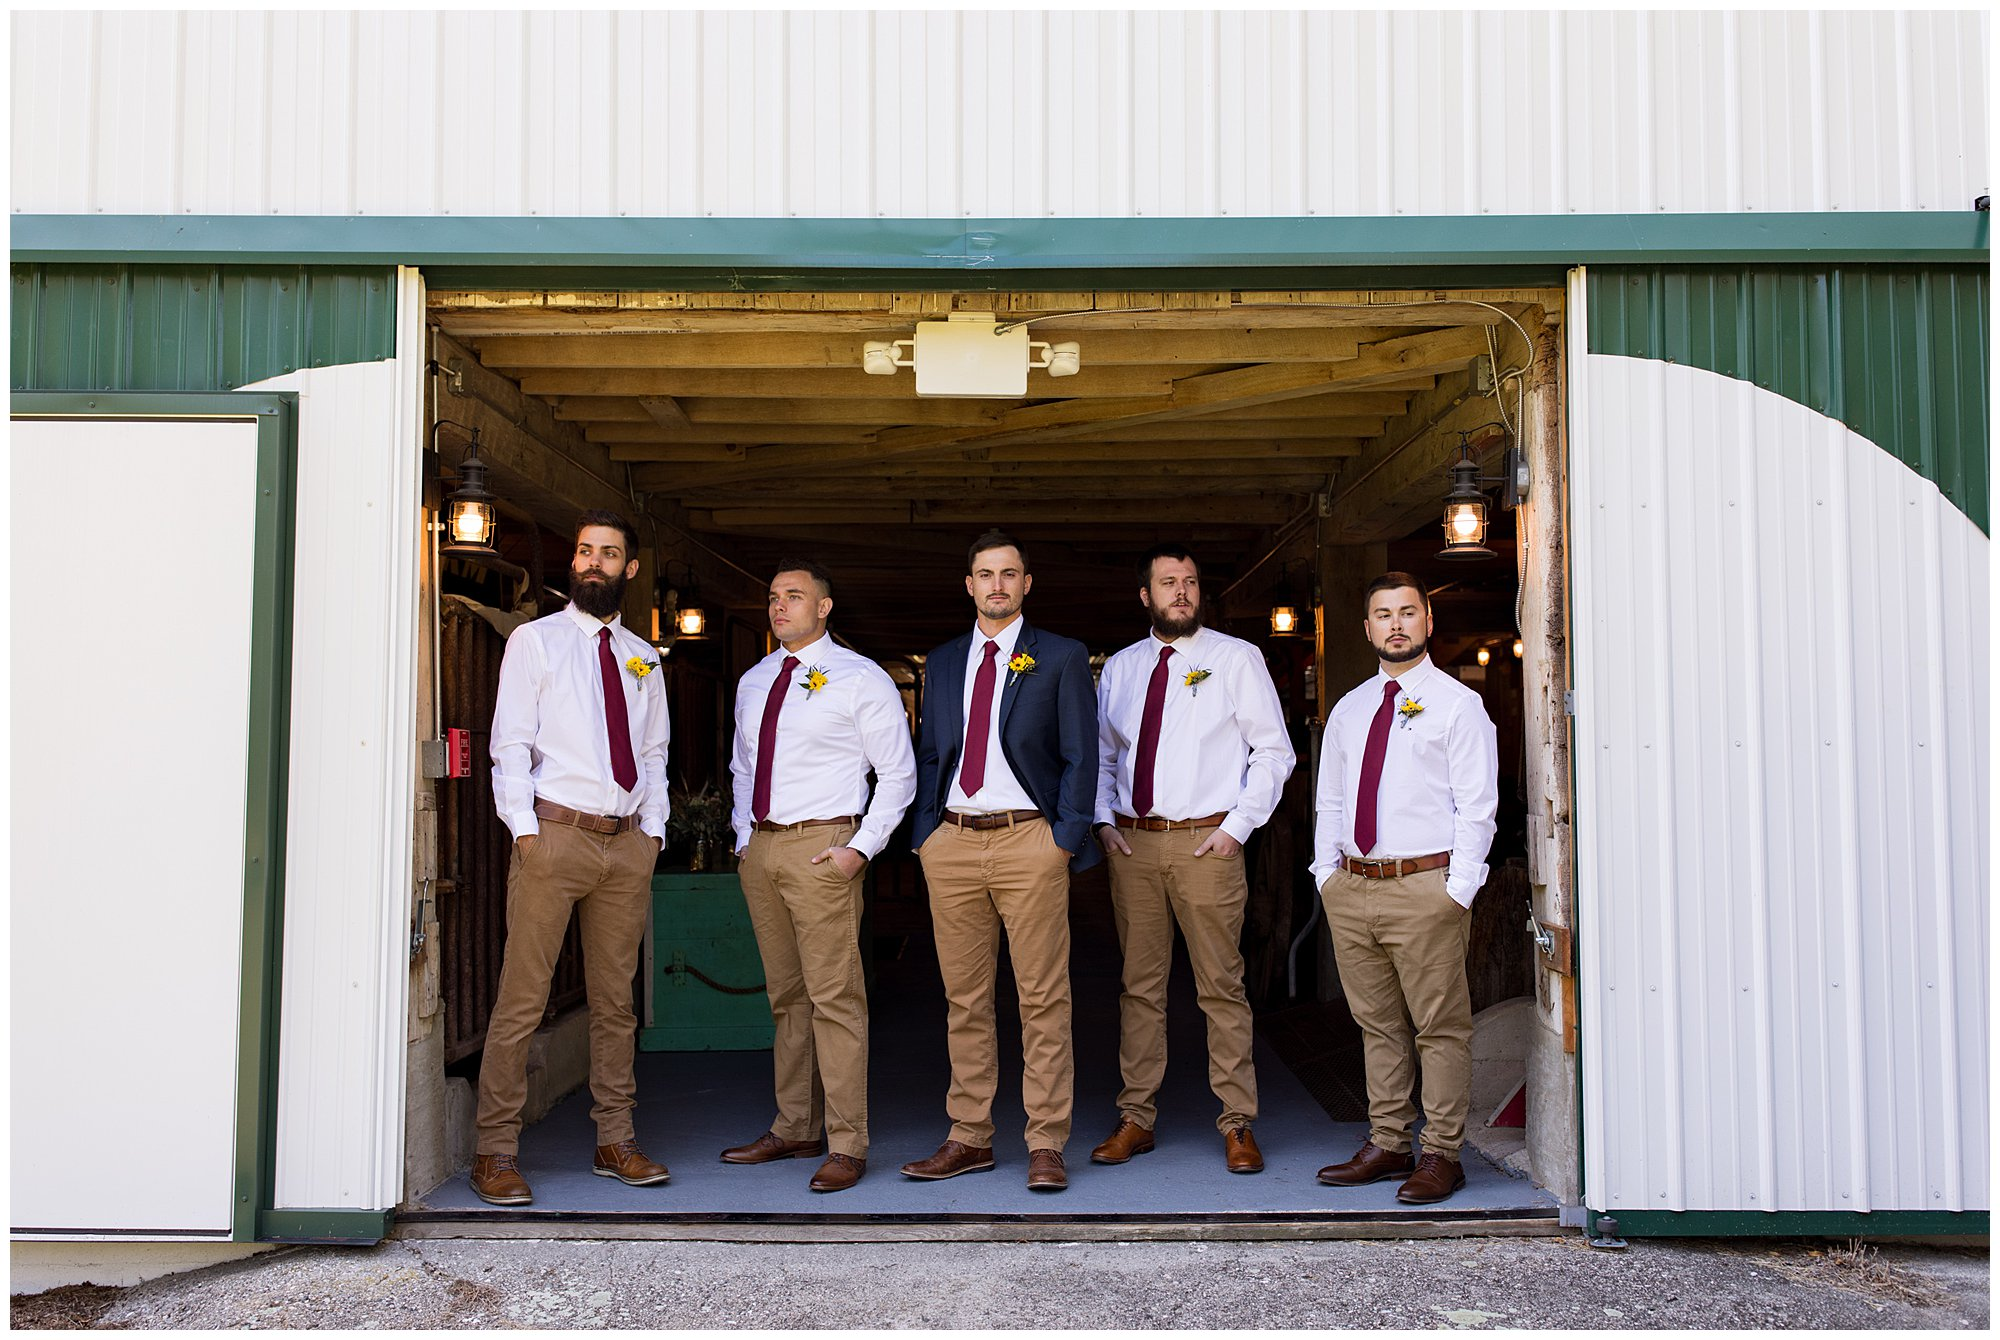 groom and groomsmen photos before wedding ceremony at Legacy Barn in Kokomo Indiana